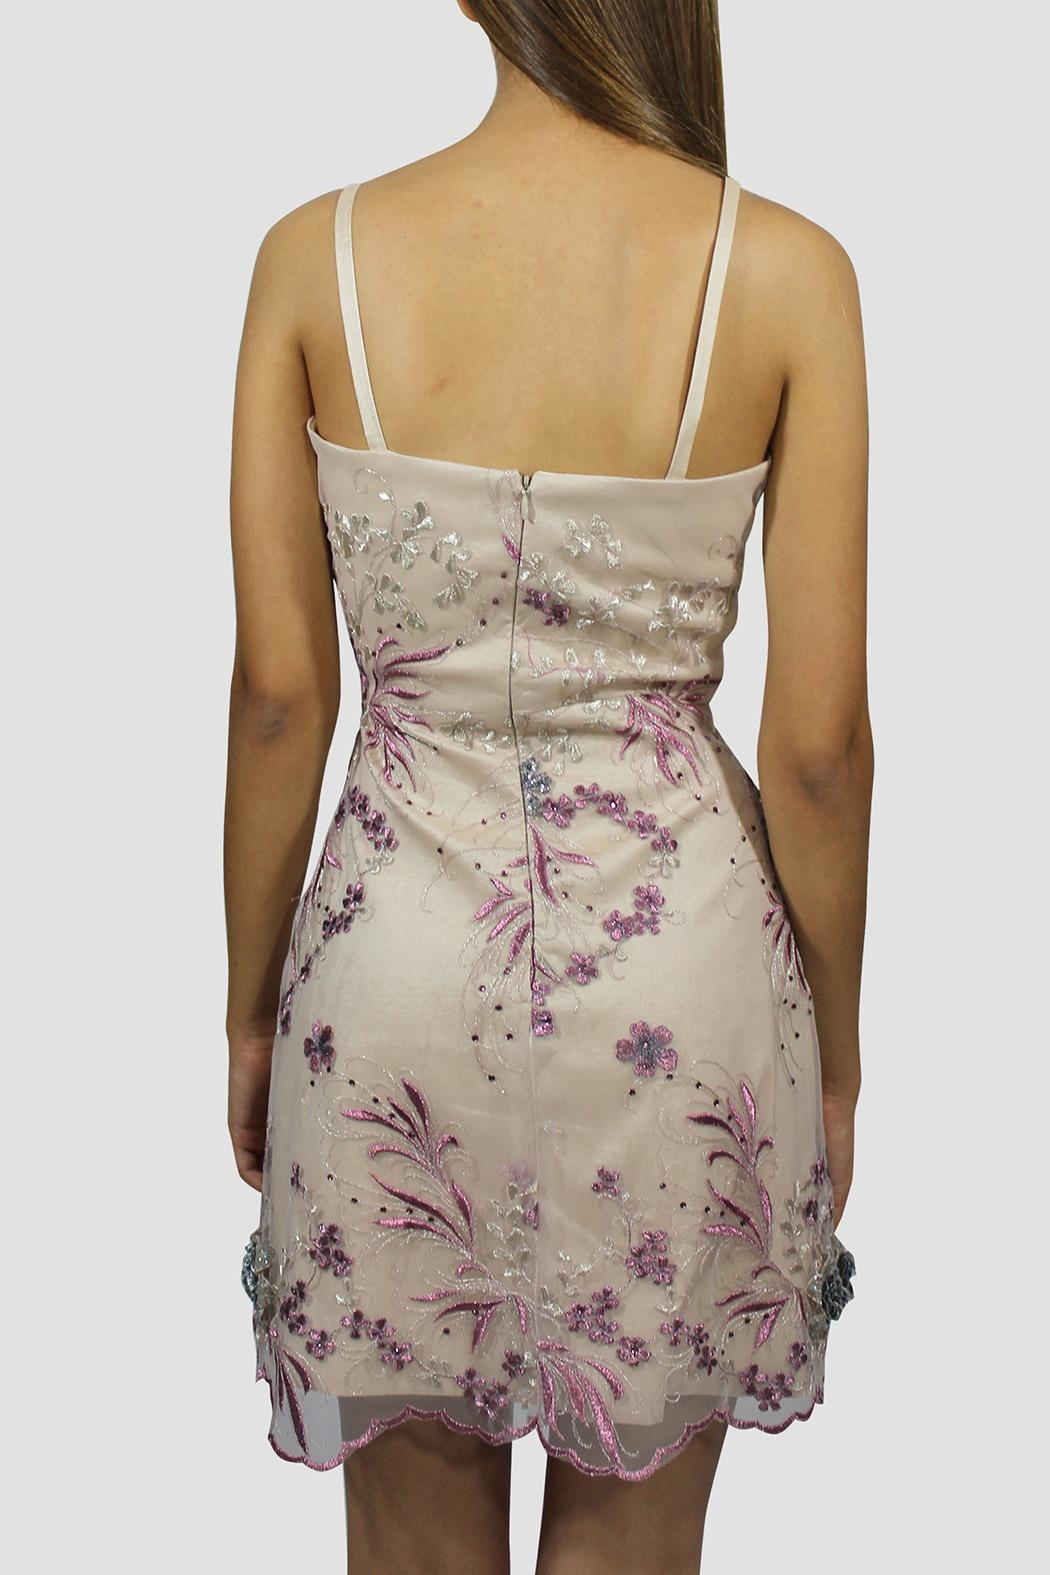 SoZu Floral Lace Sheath Dress - Side Cropped Image